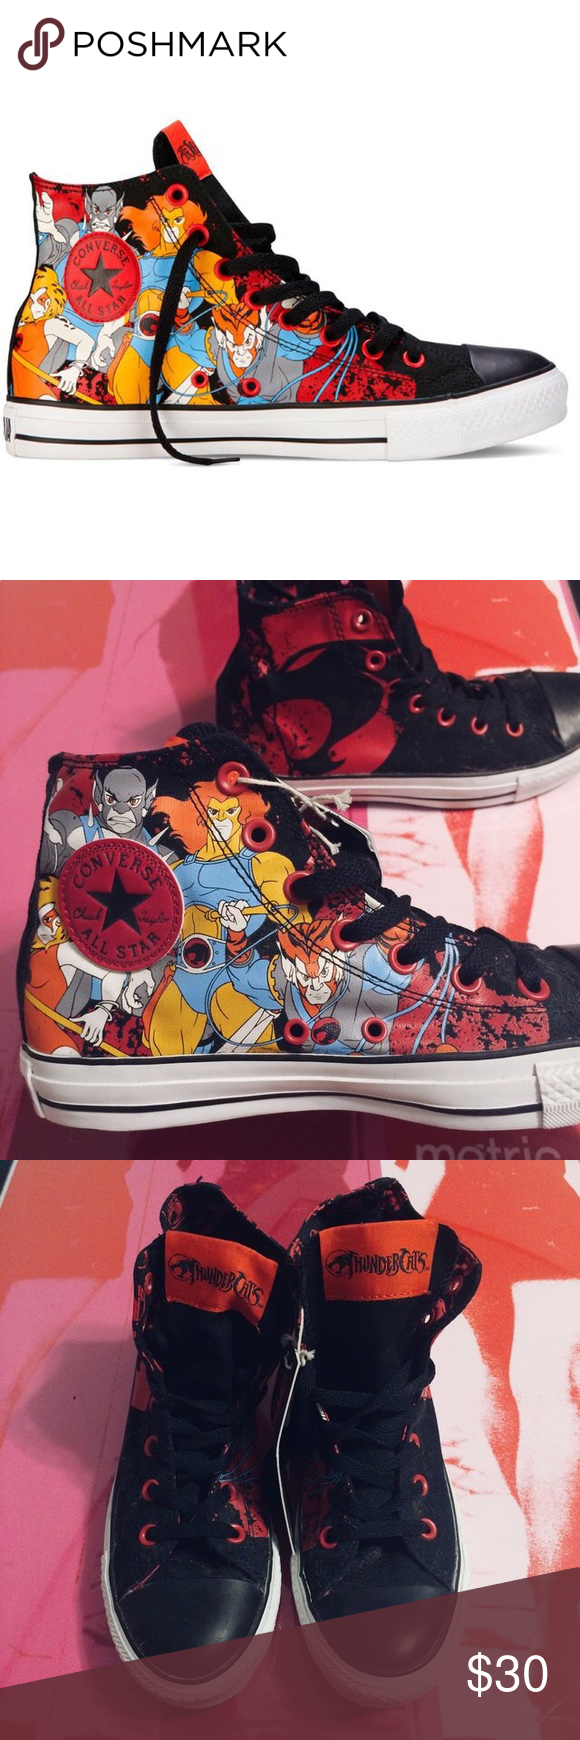 a84042dfaba91d thundercats sneakers • brand  converse • size  men s 5.5   women s 7.5 •  condition  brand new with tags Tags  cons chuck taylor cartoon anime lion-o  jaga ...